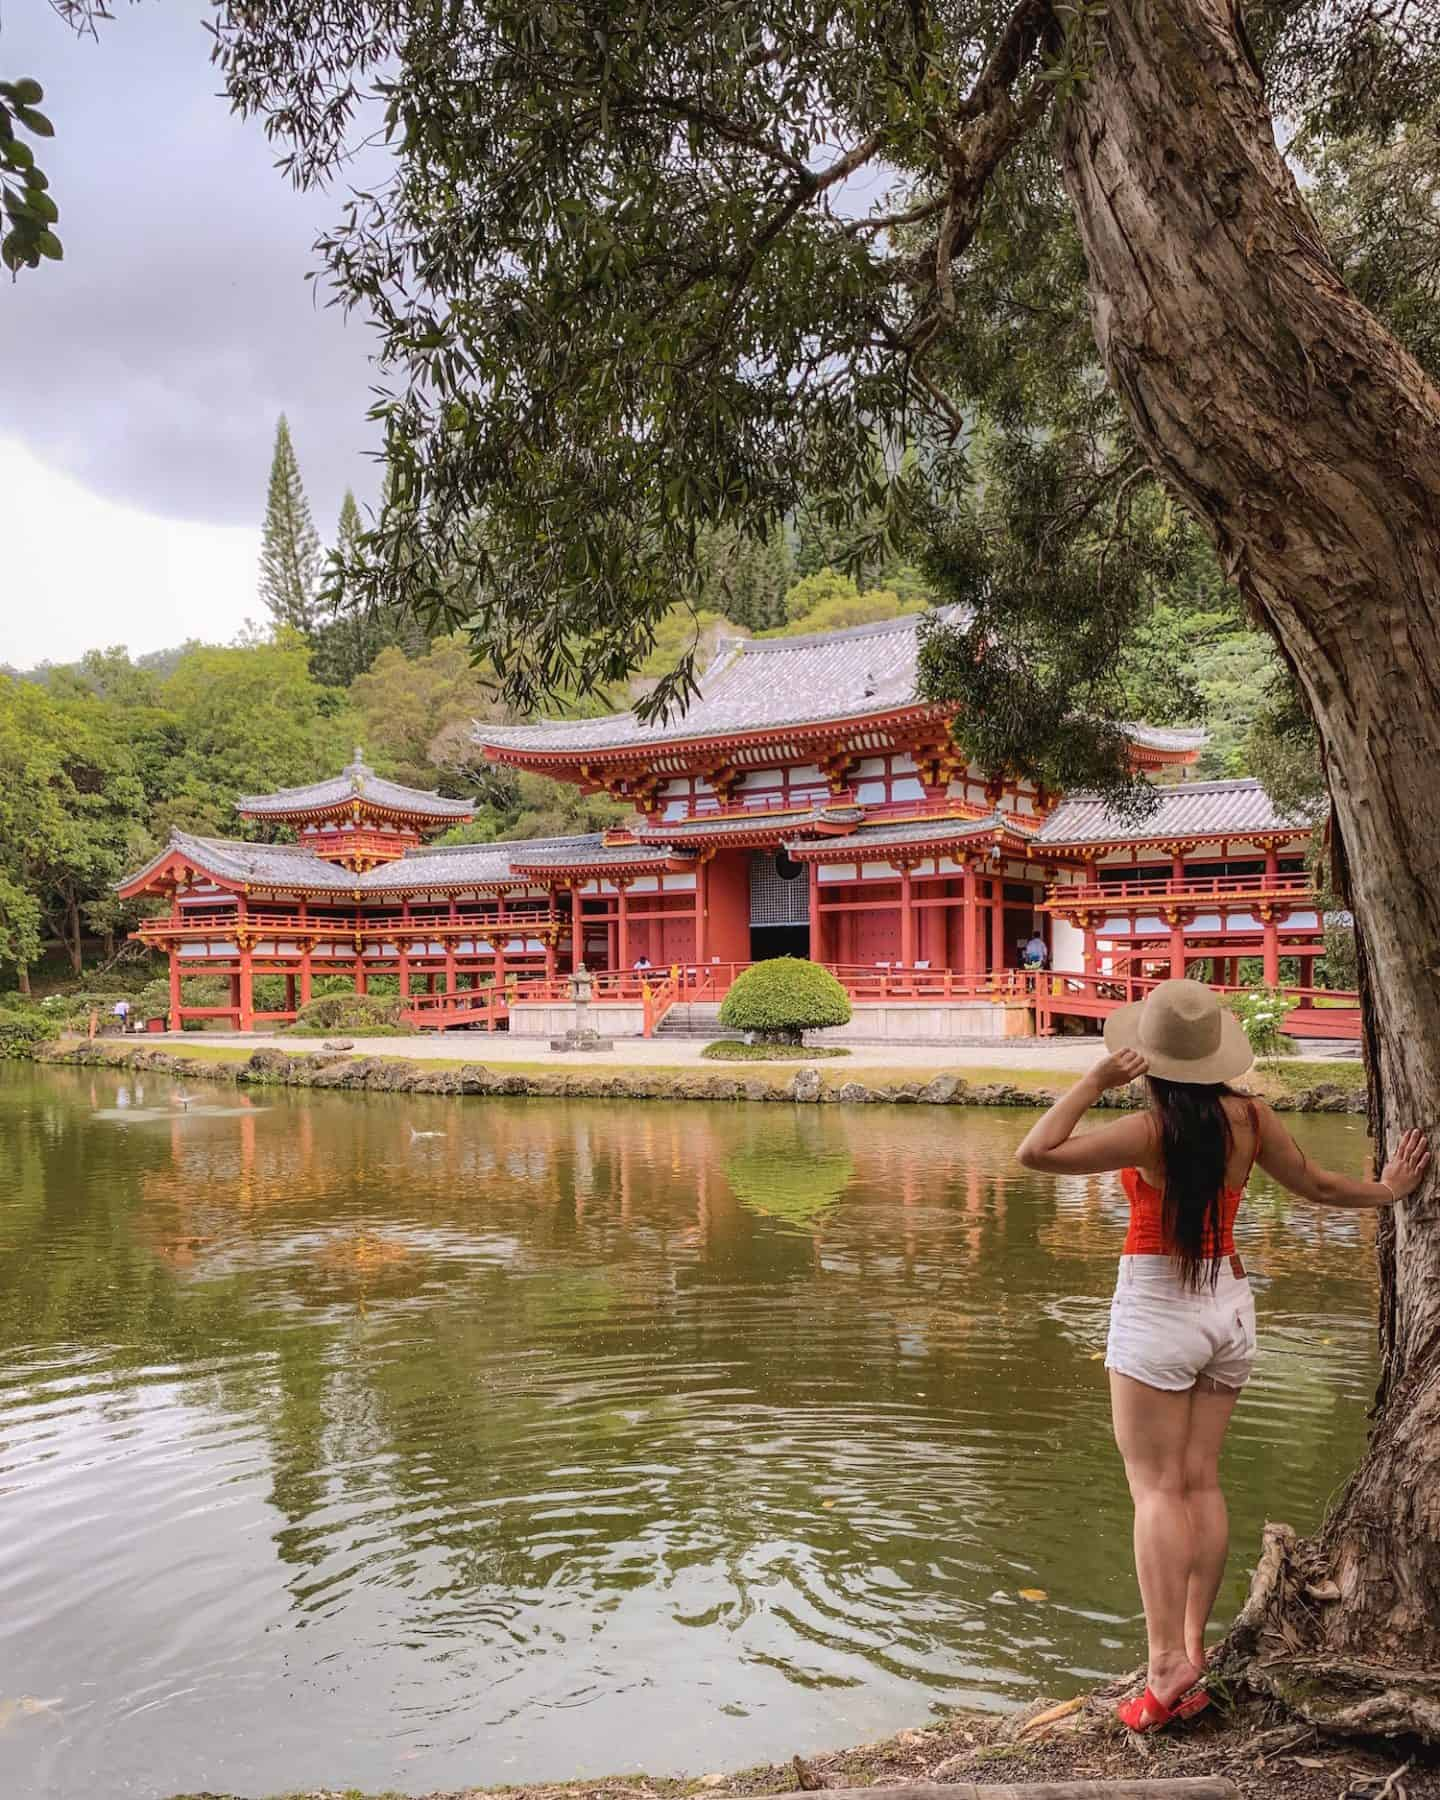 Byodo-In Temple is a Japanese temple in Oahu, Hawaii